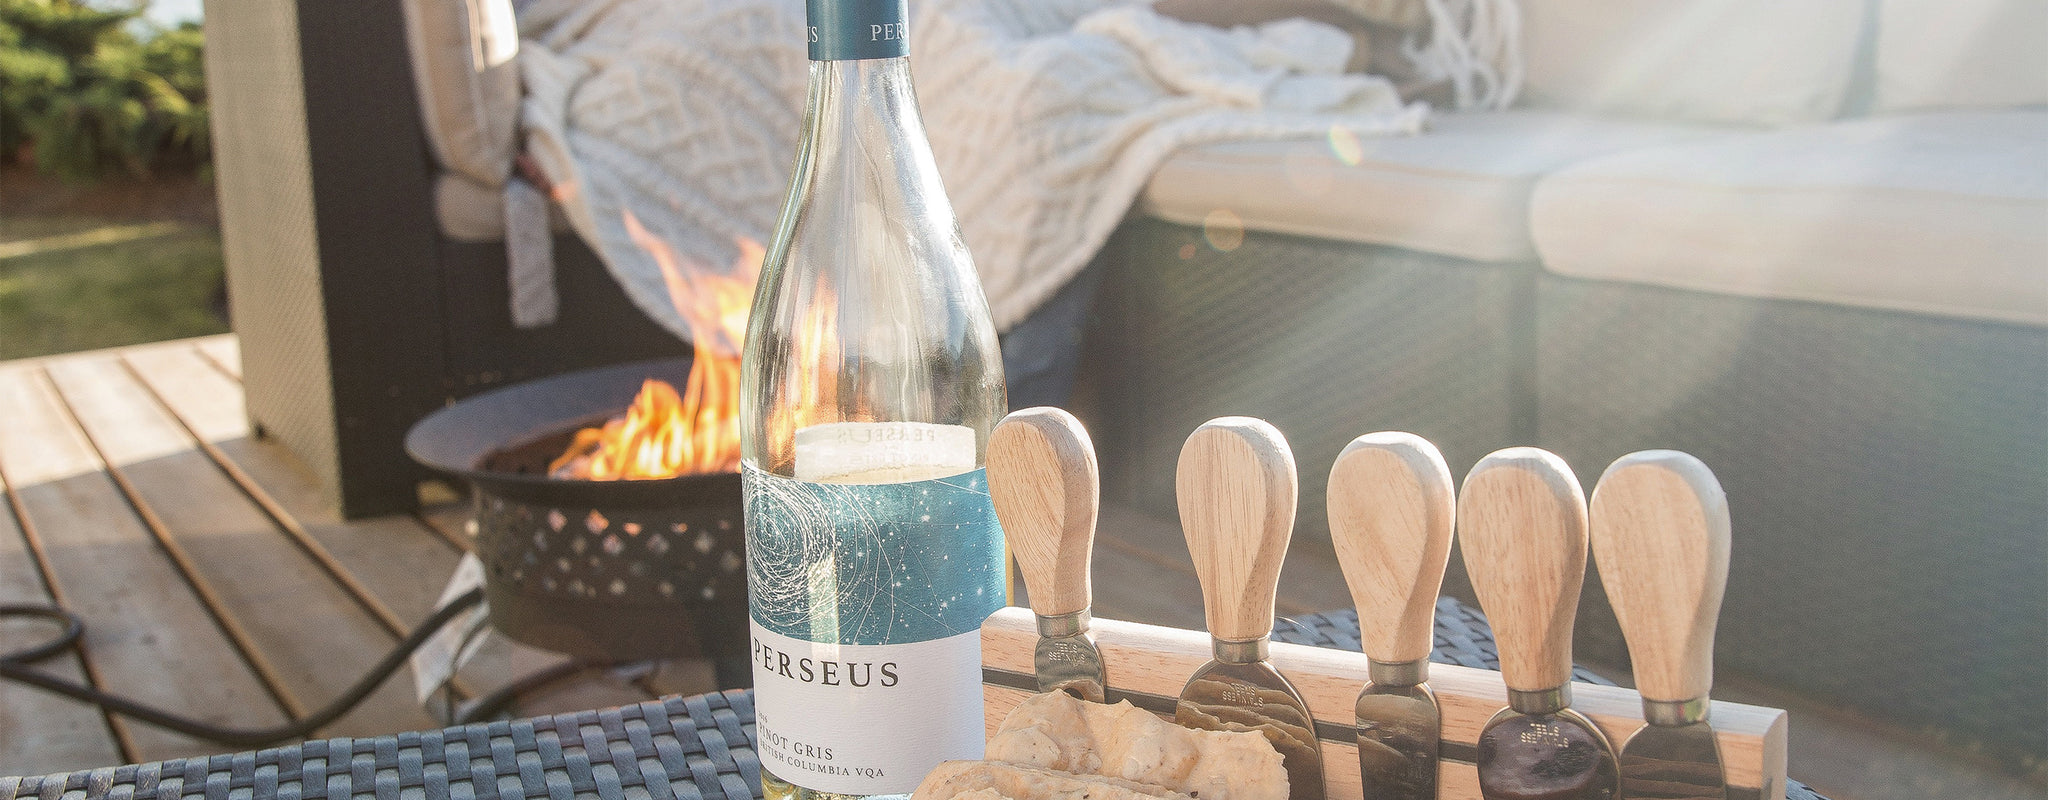 Photo of a white wine bottle on an outdoor table next to a small fire